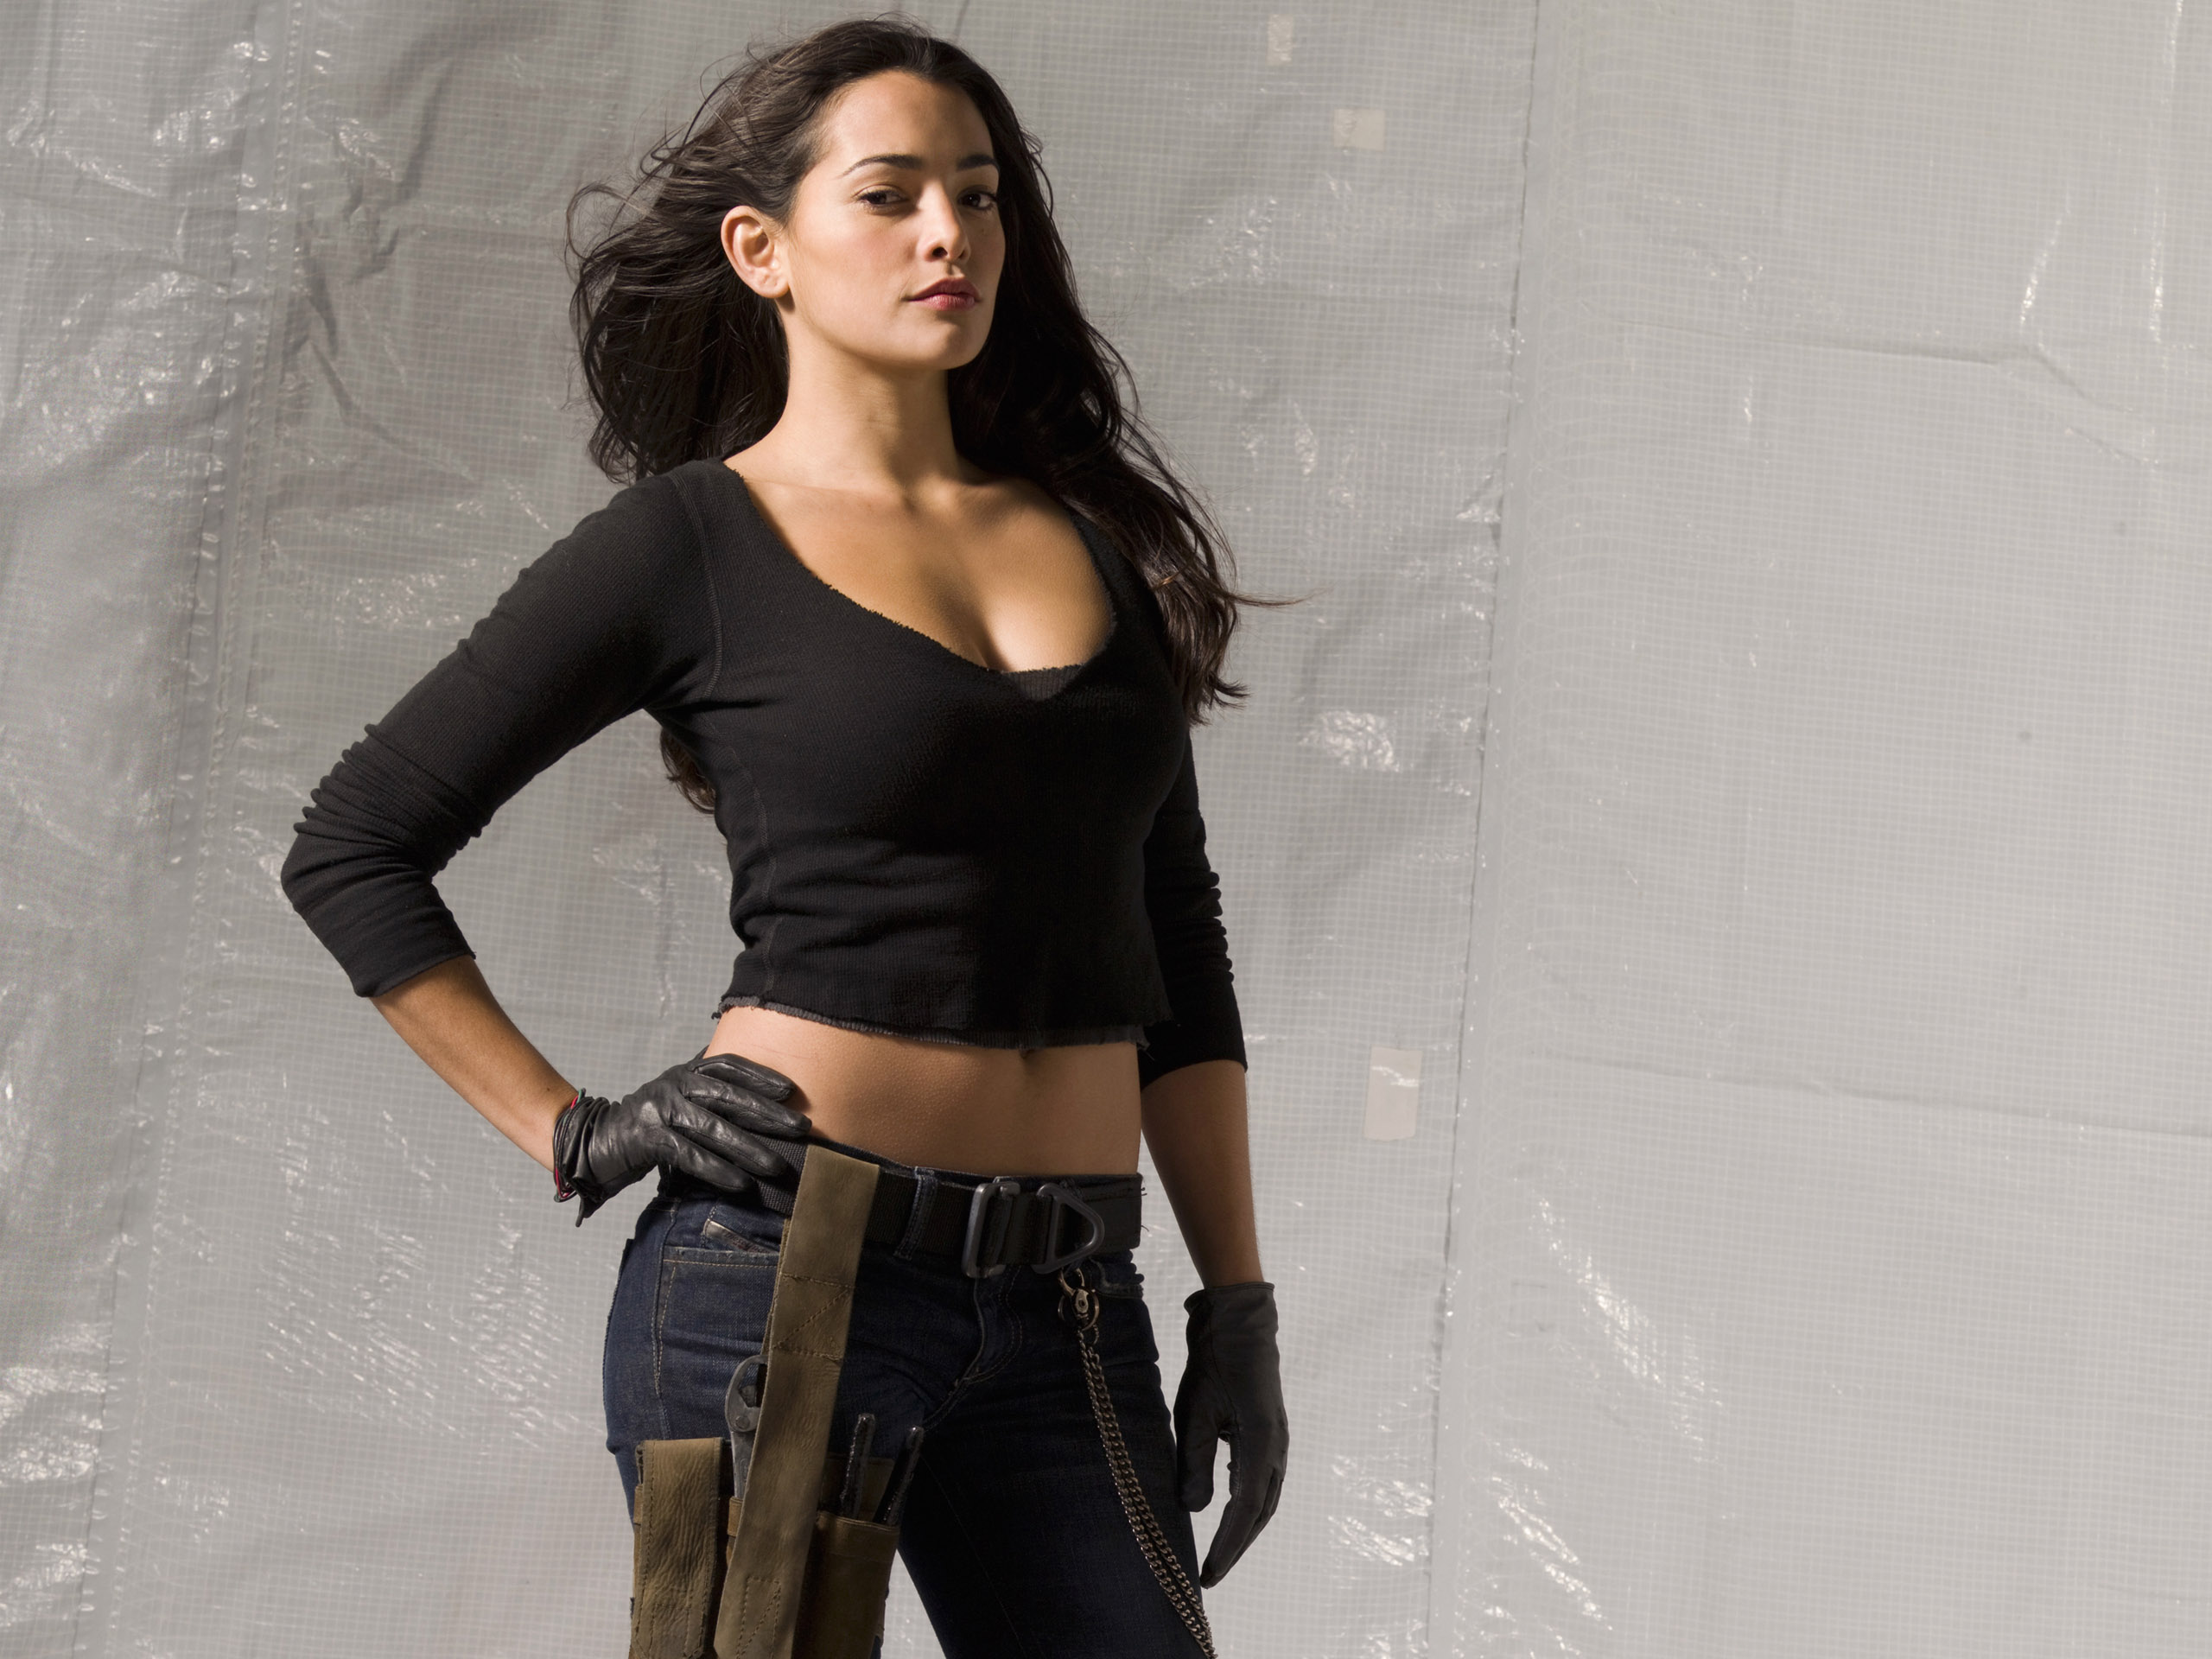 natalie martinez in death race #4193376, 1920x1440 | all for desktop